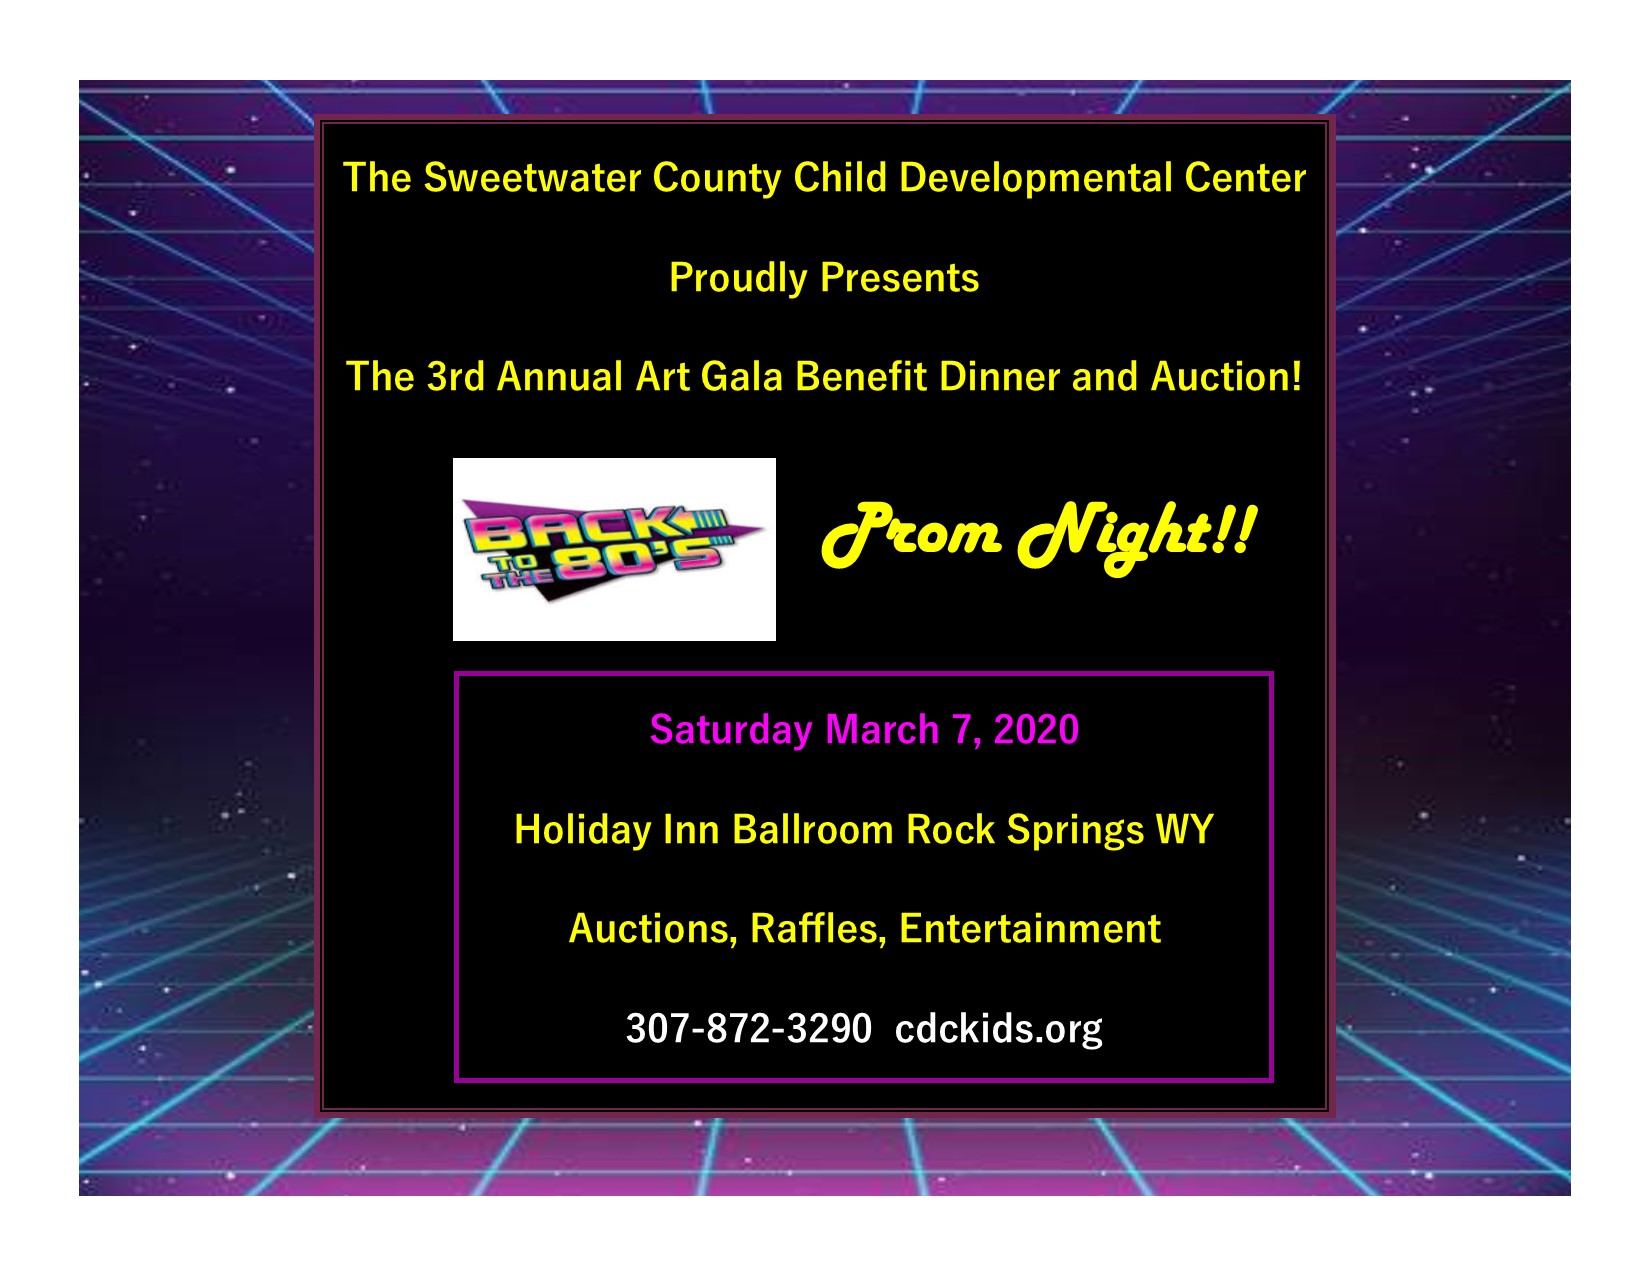 Sweetwater County CDC's Art Gala Click me for Tickets!